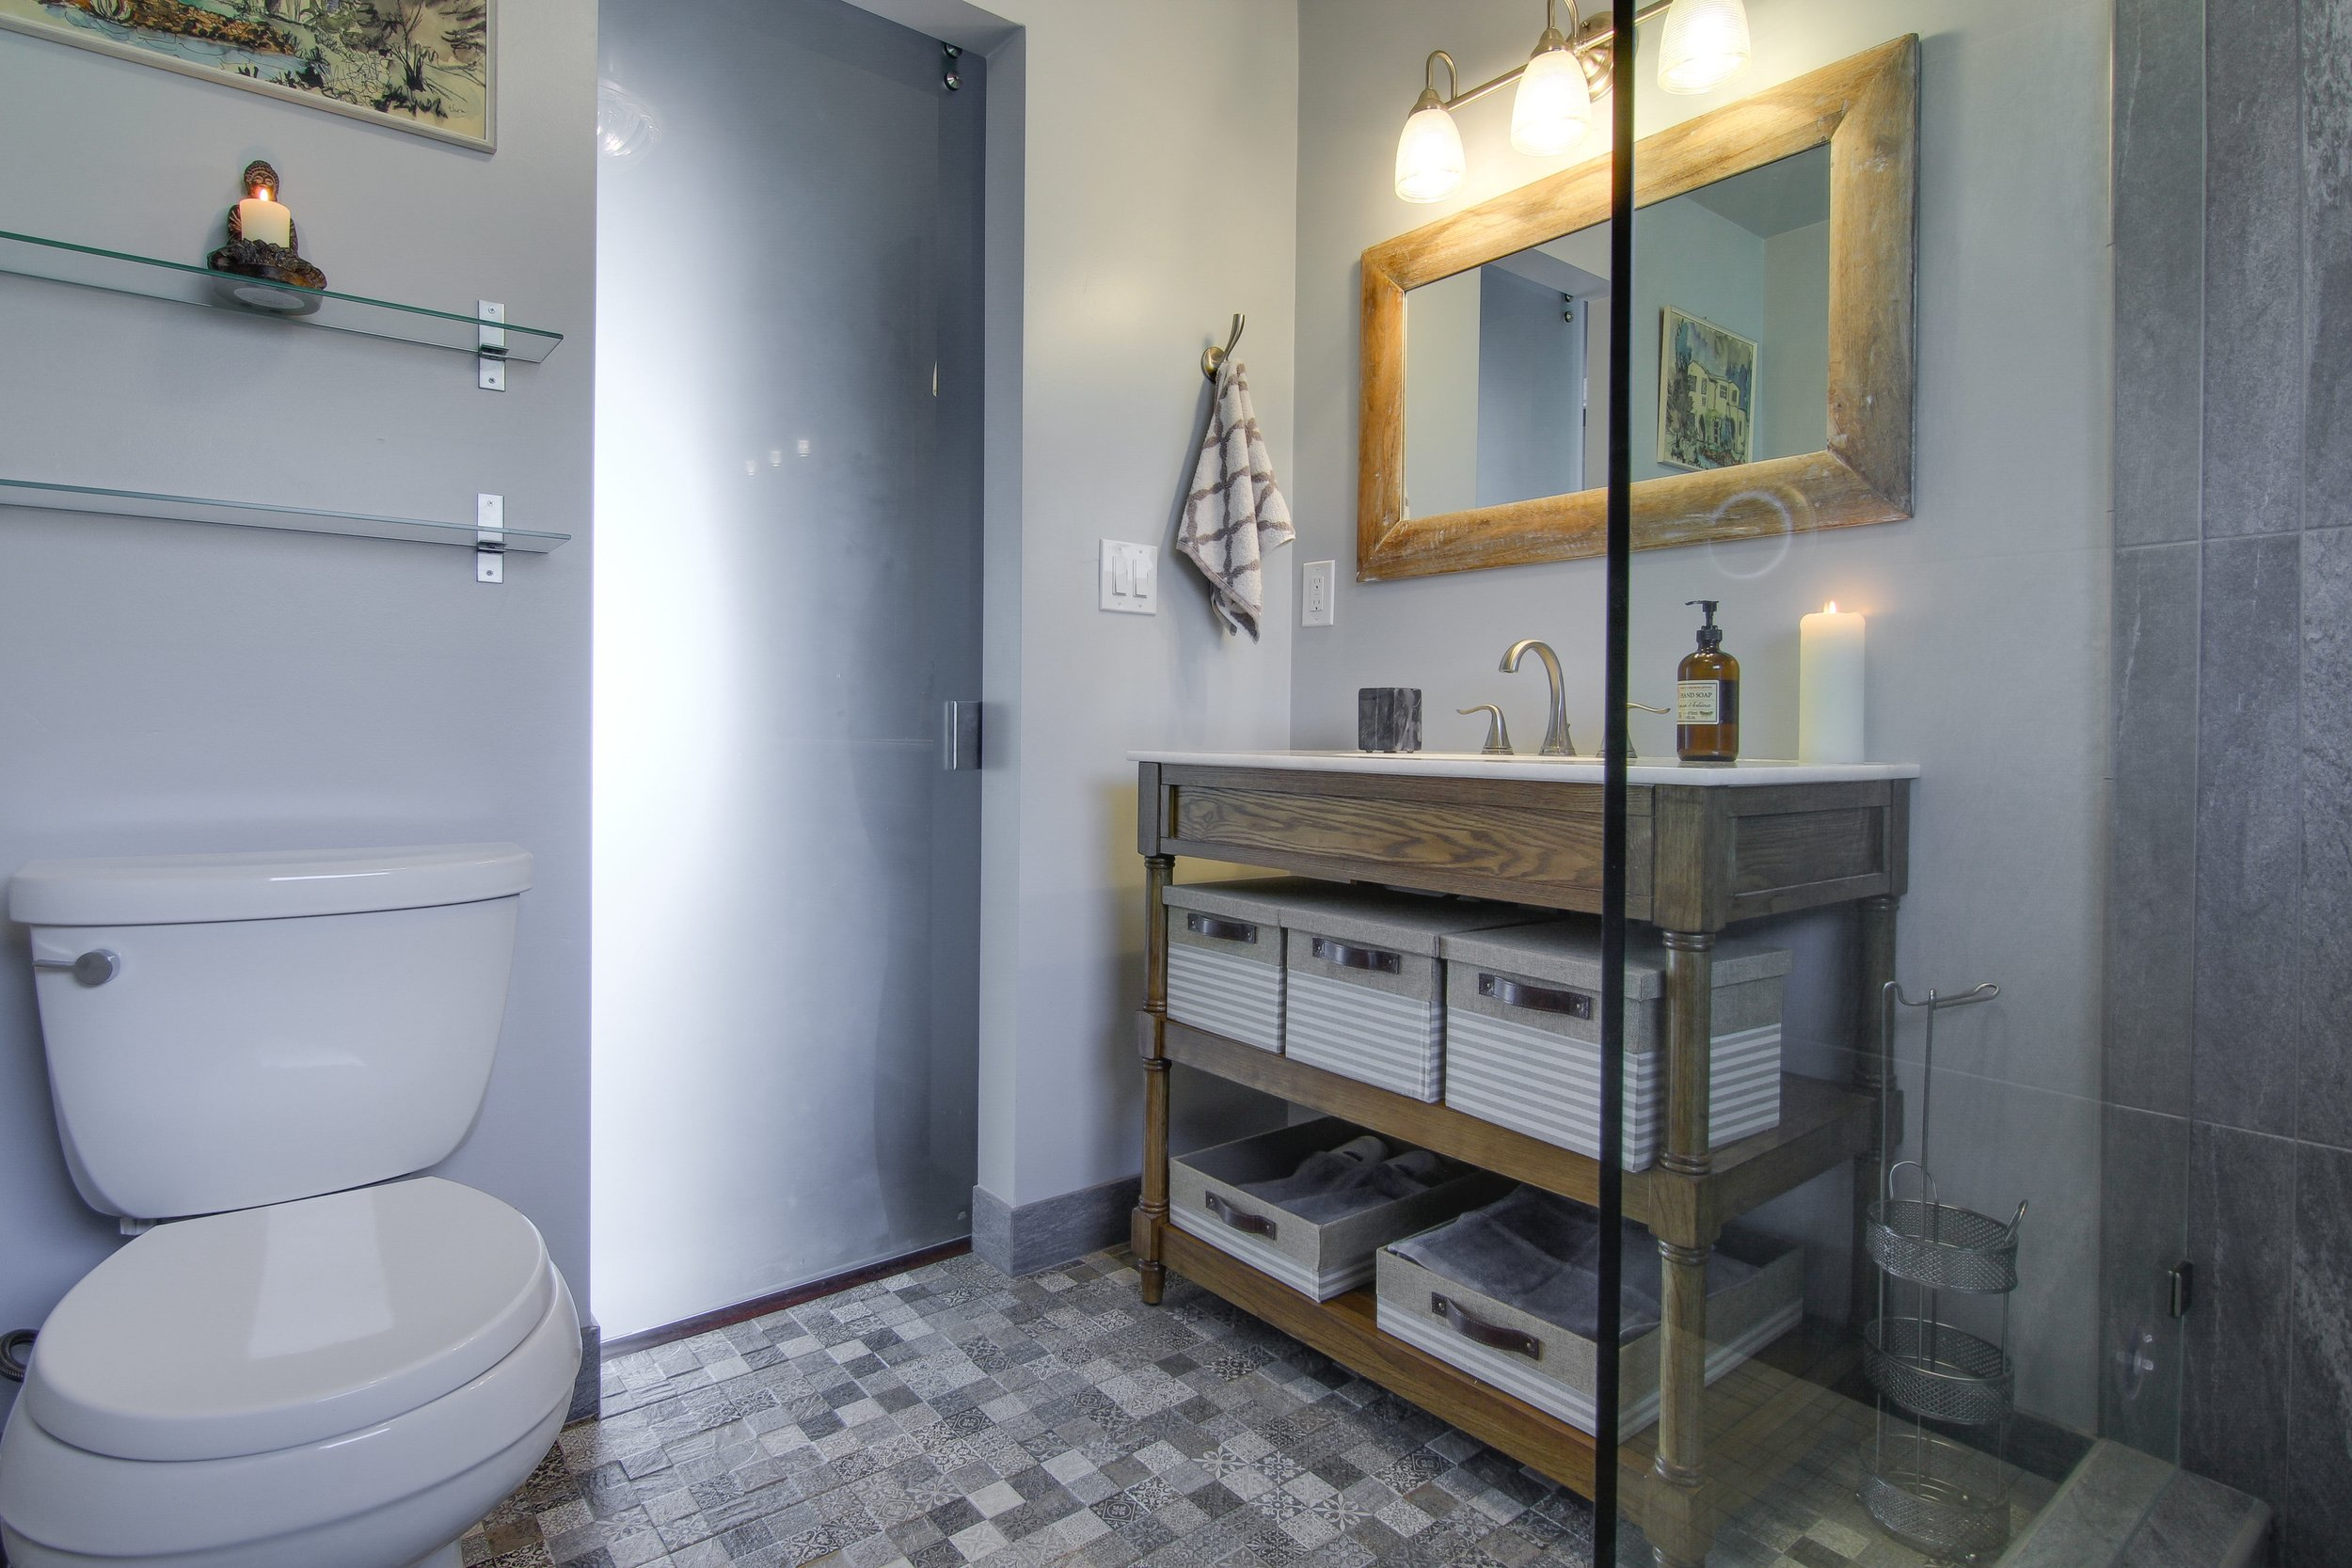 After- The glass barn door illuminates the bathroom with natural light.